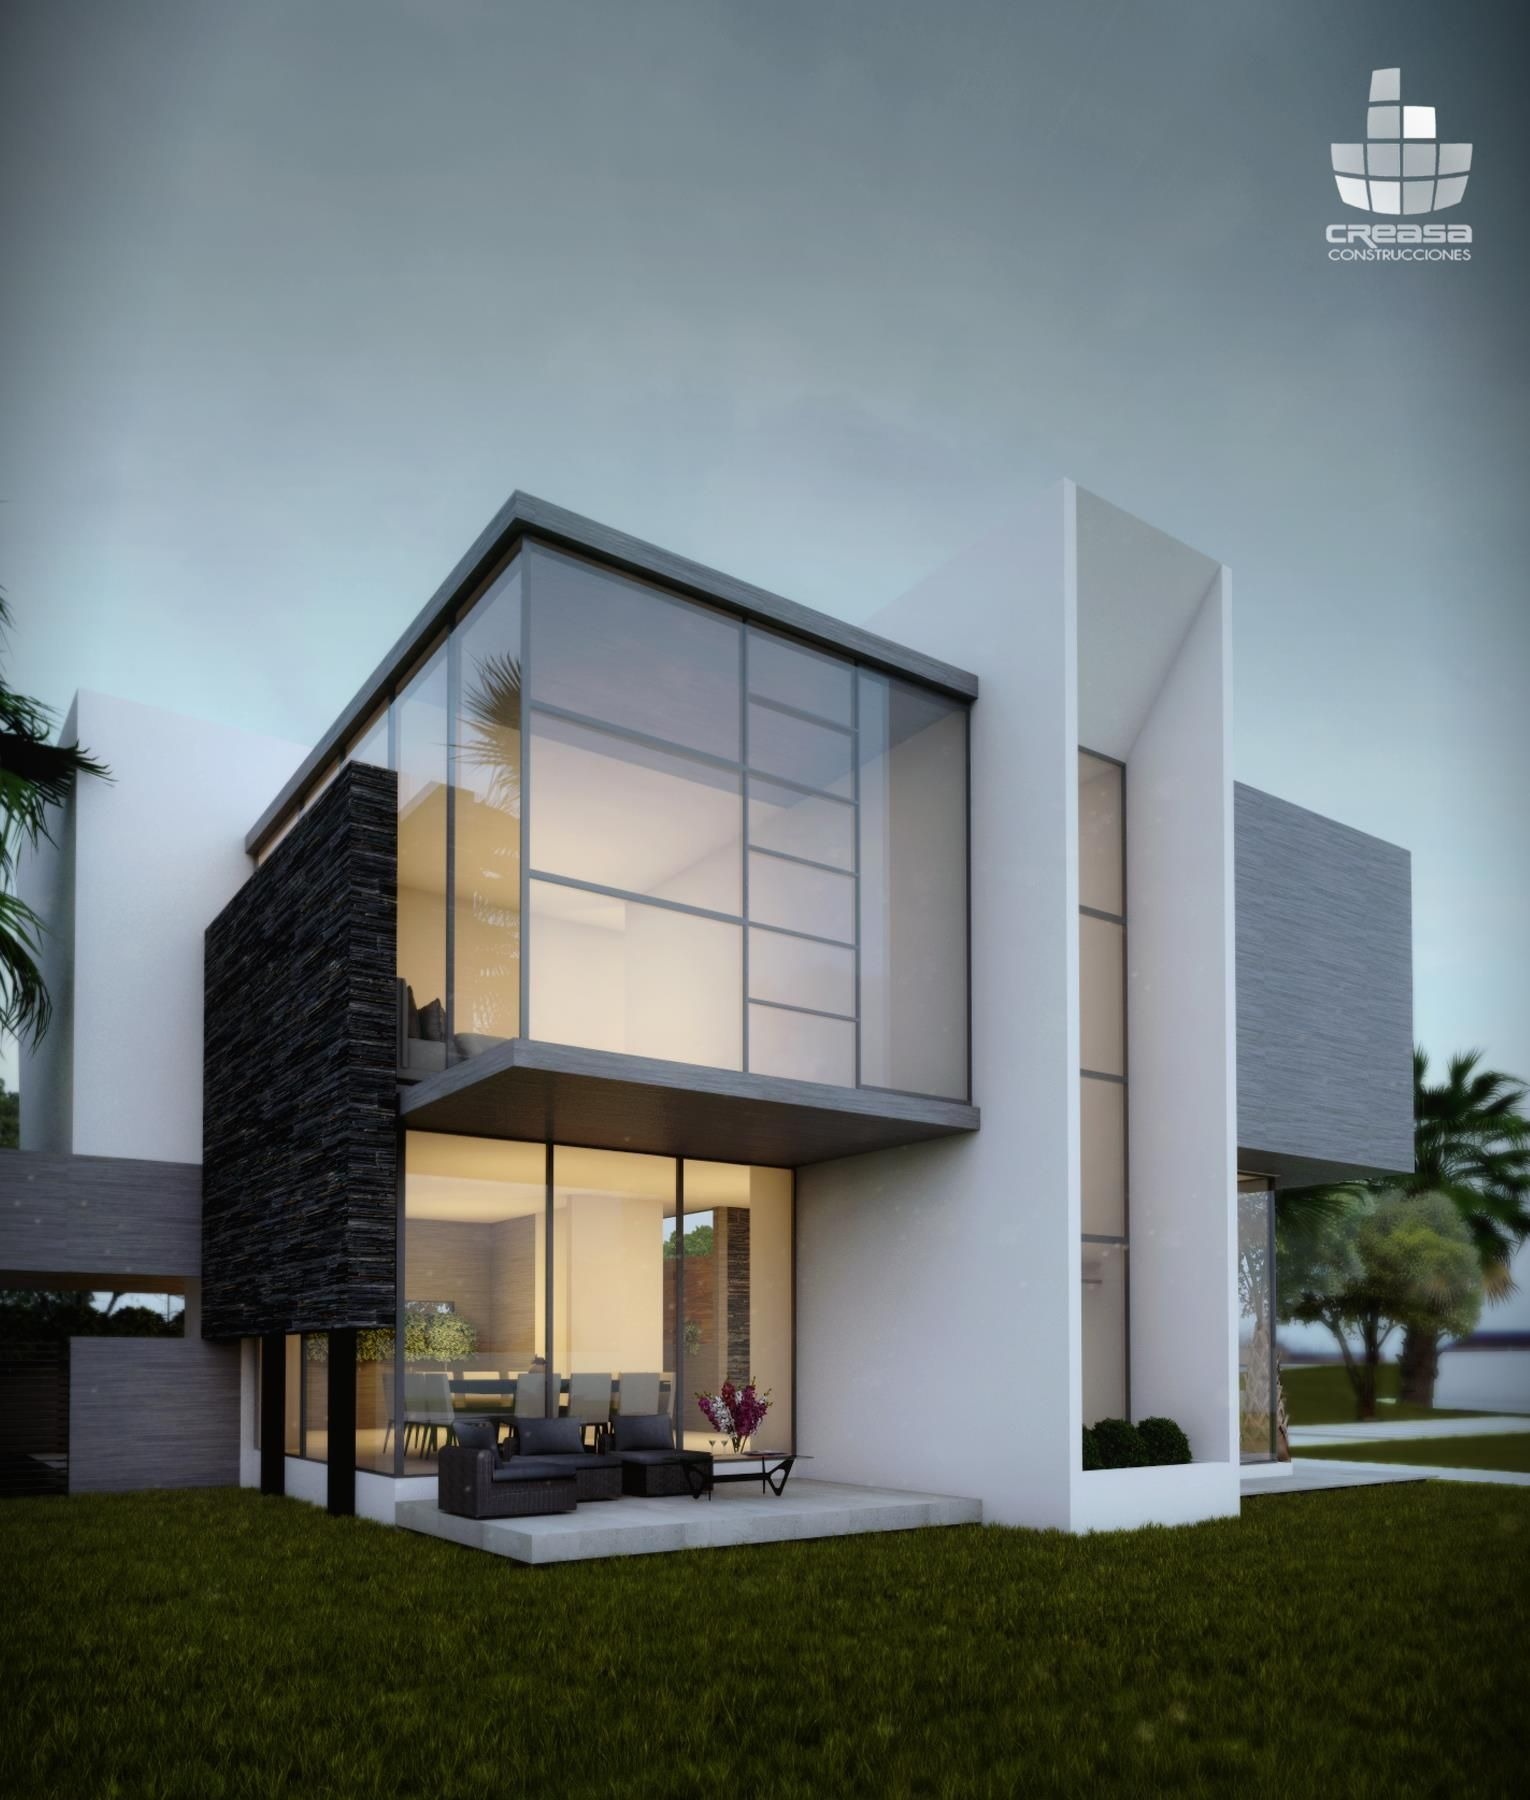 Creasa modern architecture pinterest villas house for Architectural home designs